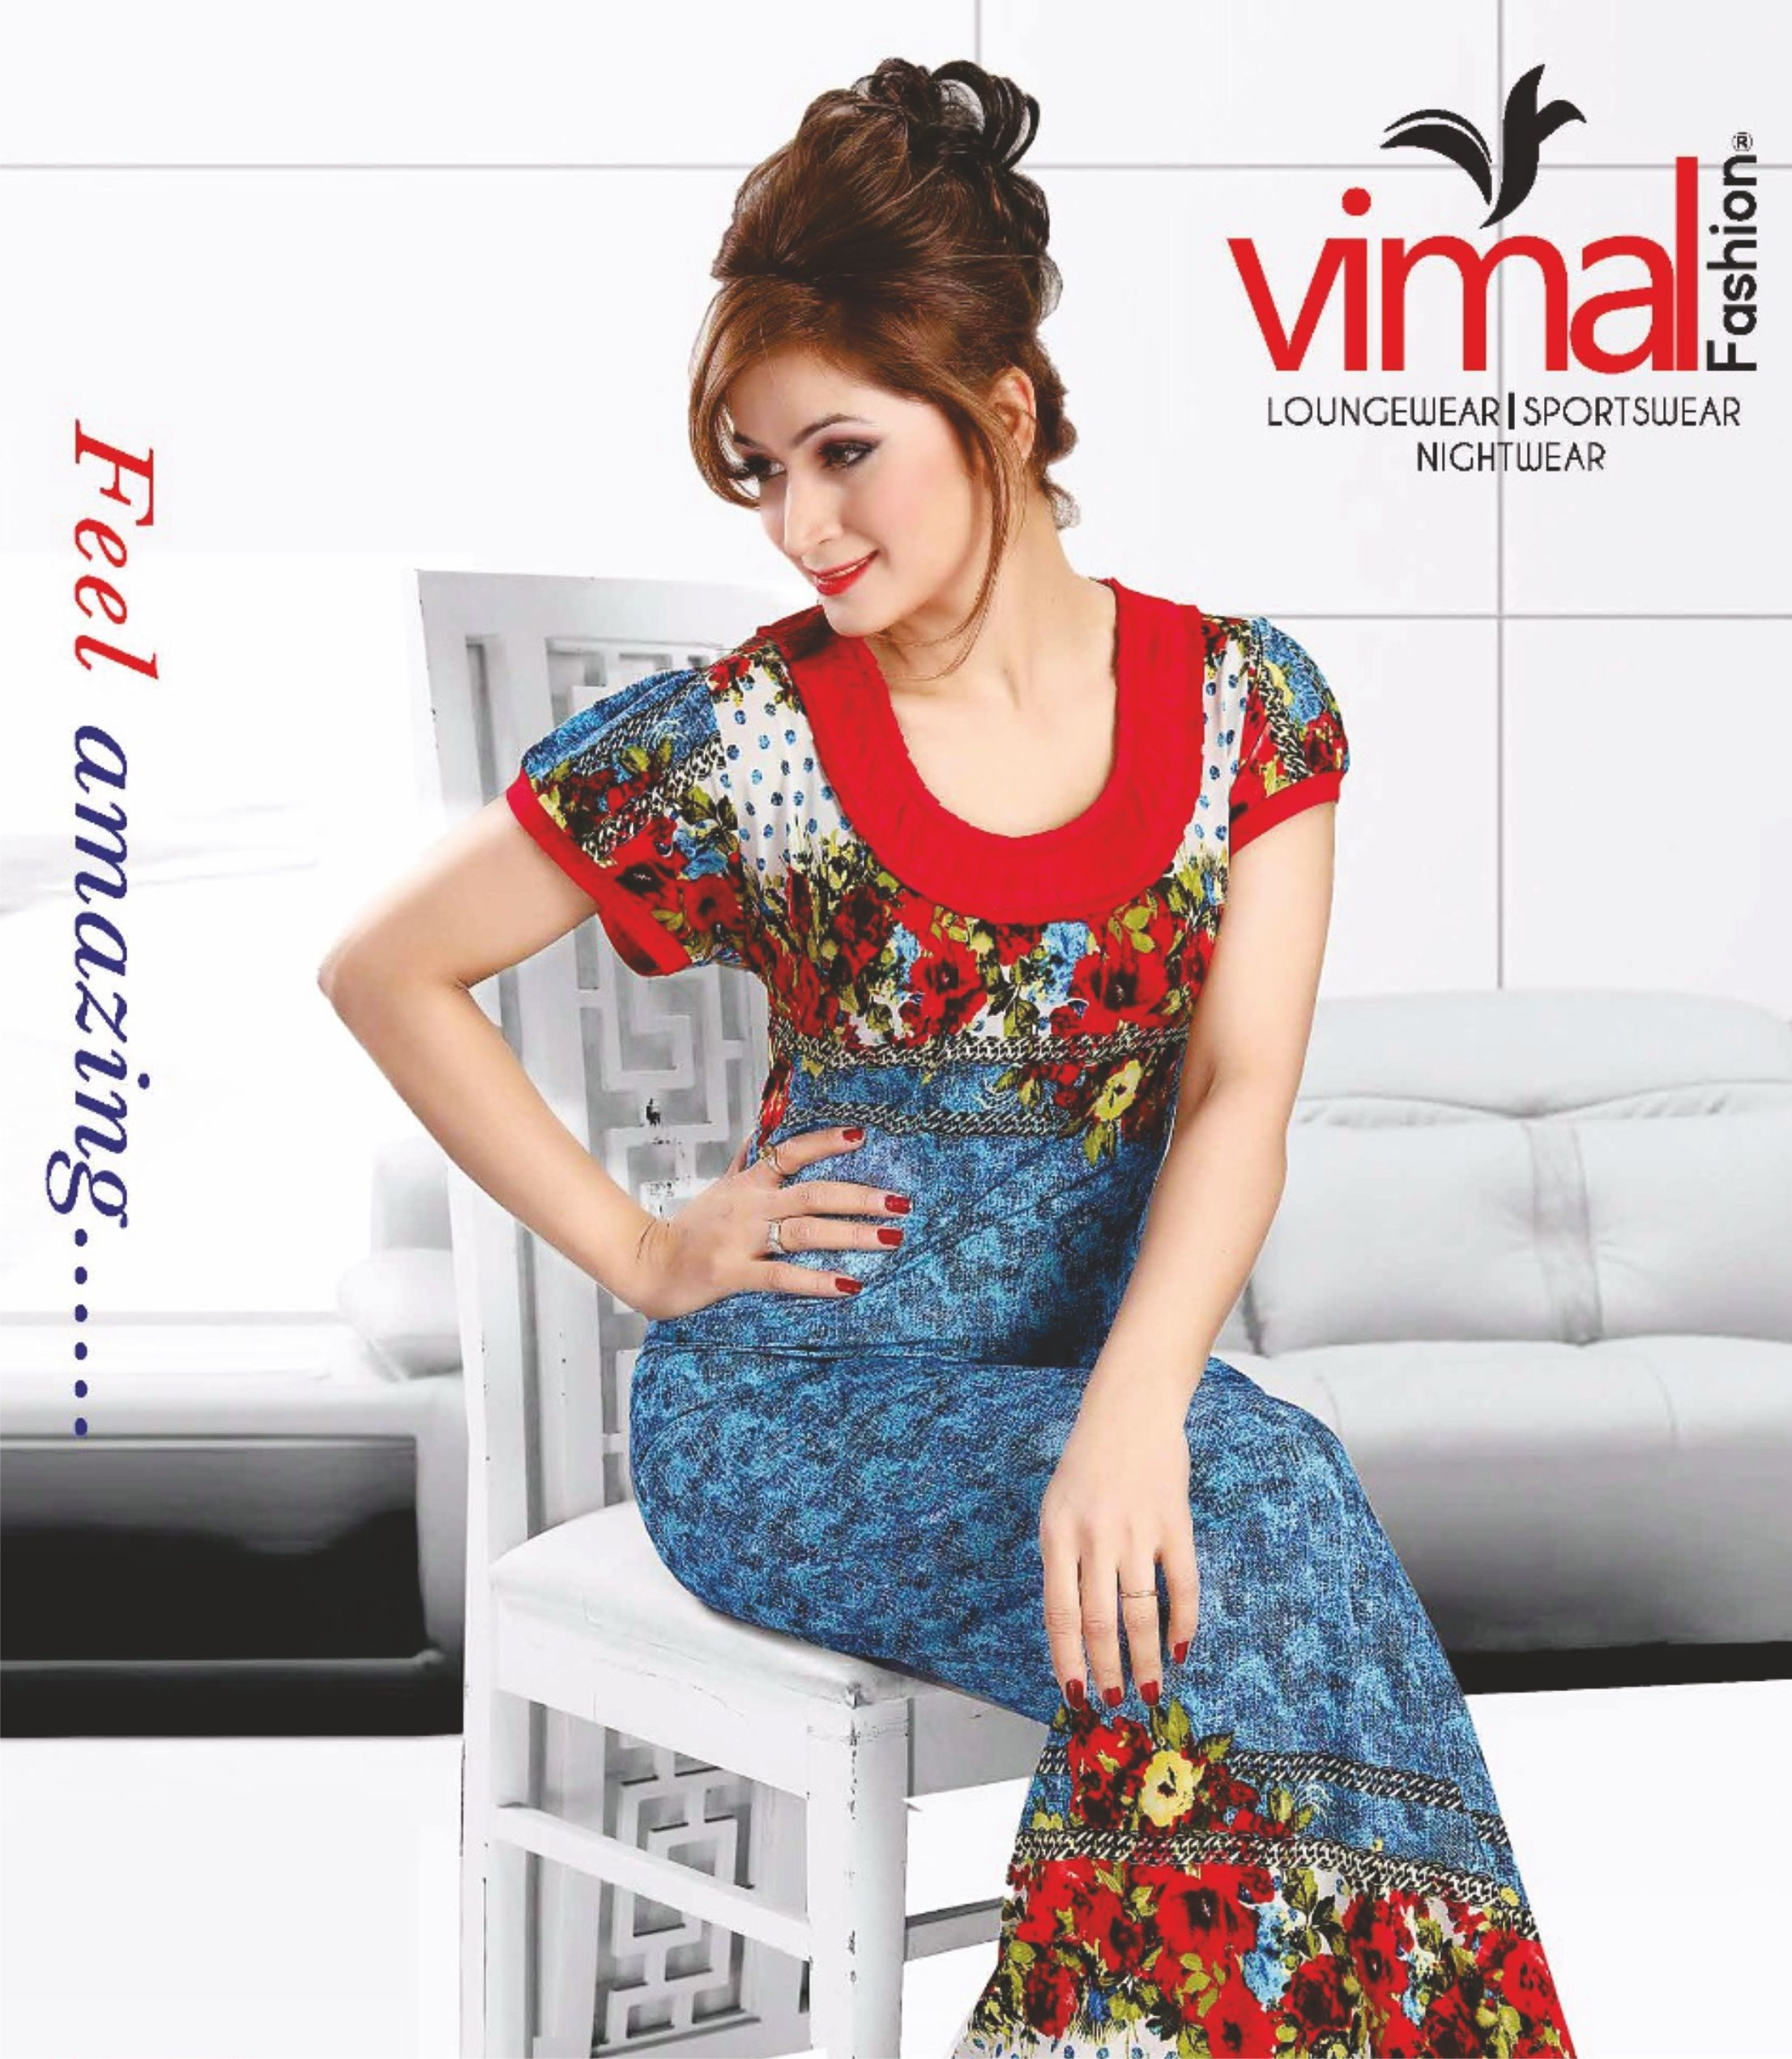 Dazzle your nights with vimal nightwear